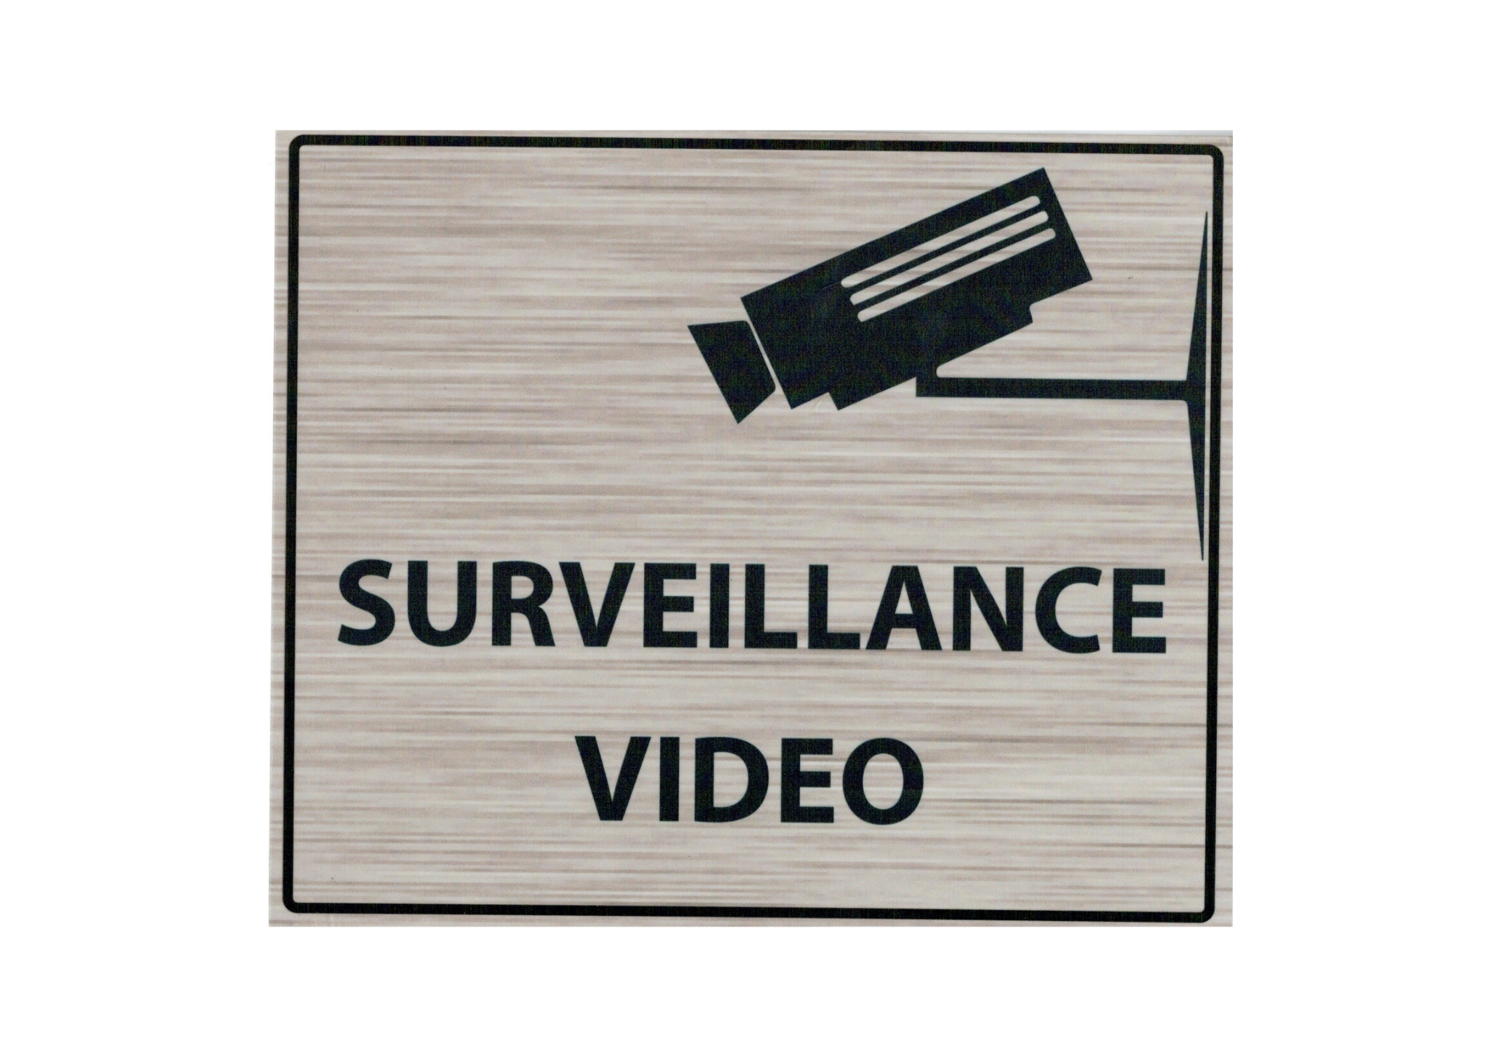 KISIKOL SURVEILLANCE VIDEO PLAQUE PVC SECURITE SIGNALITIQUE DECORATION DECOR MAISON SHOP BOUTIQUE BAR COLLECTION  3708569126540 COMASOUND KARTEL CSK ONLINE